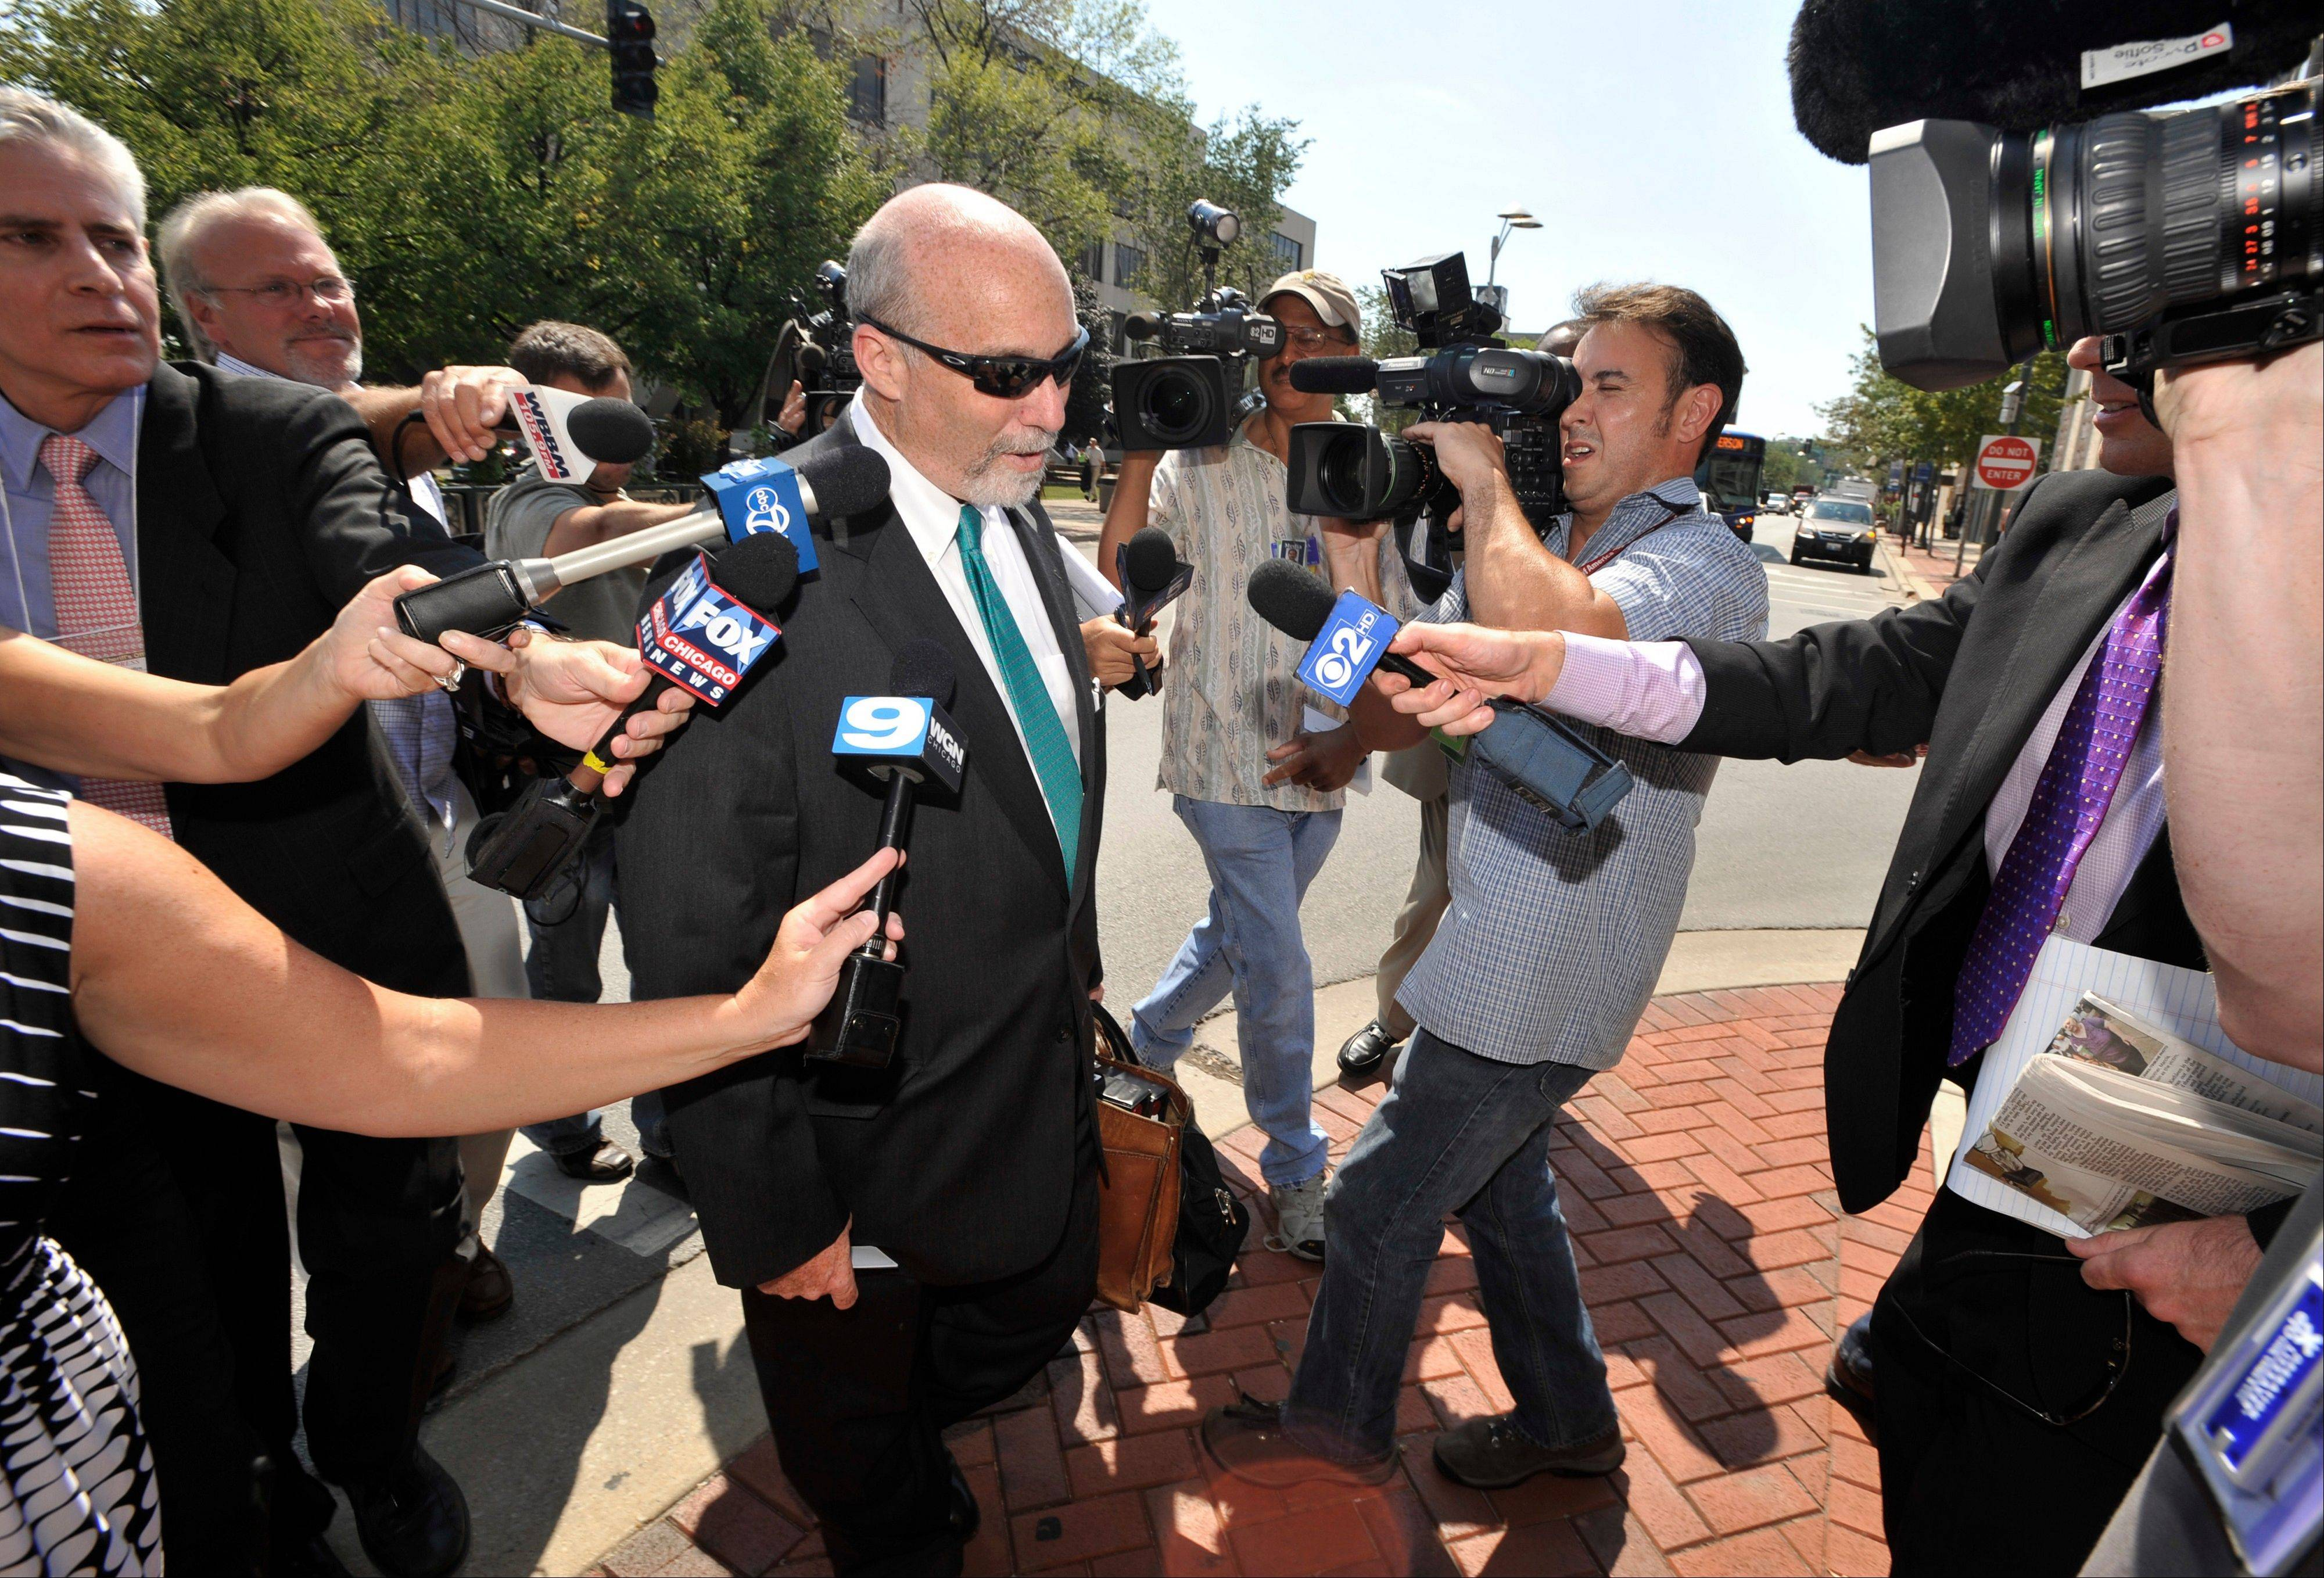 As one of the colorful Drew Peterson defense attorneys who got plenty of TV time outside the courtroom, would Joel Brodsky have acted differently if there had been a TV camera inside the courtroom?